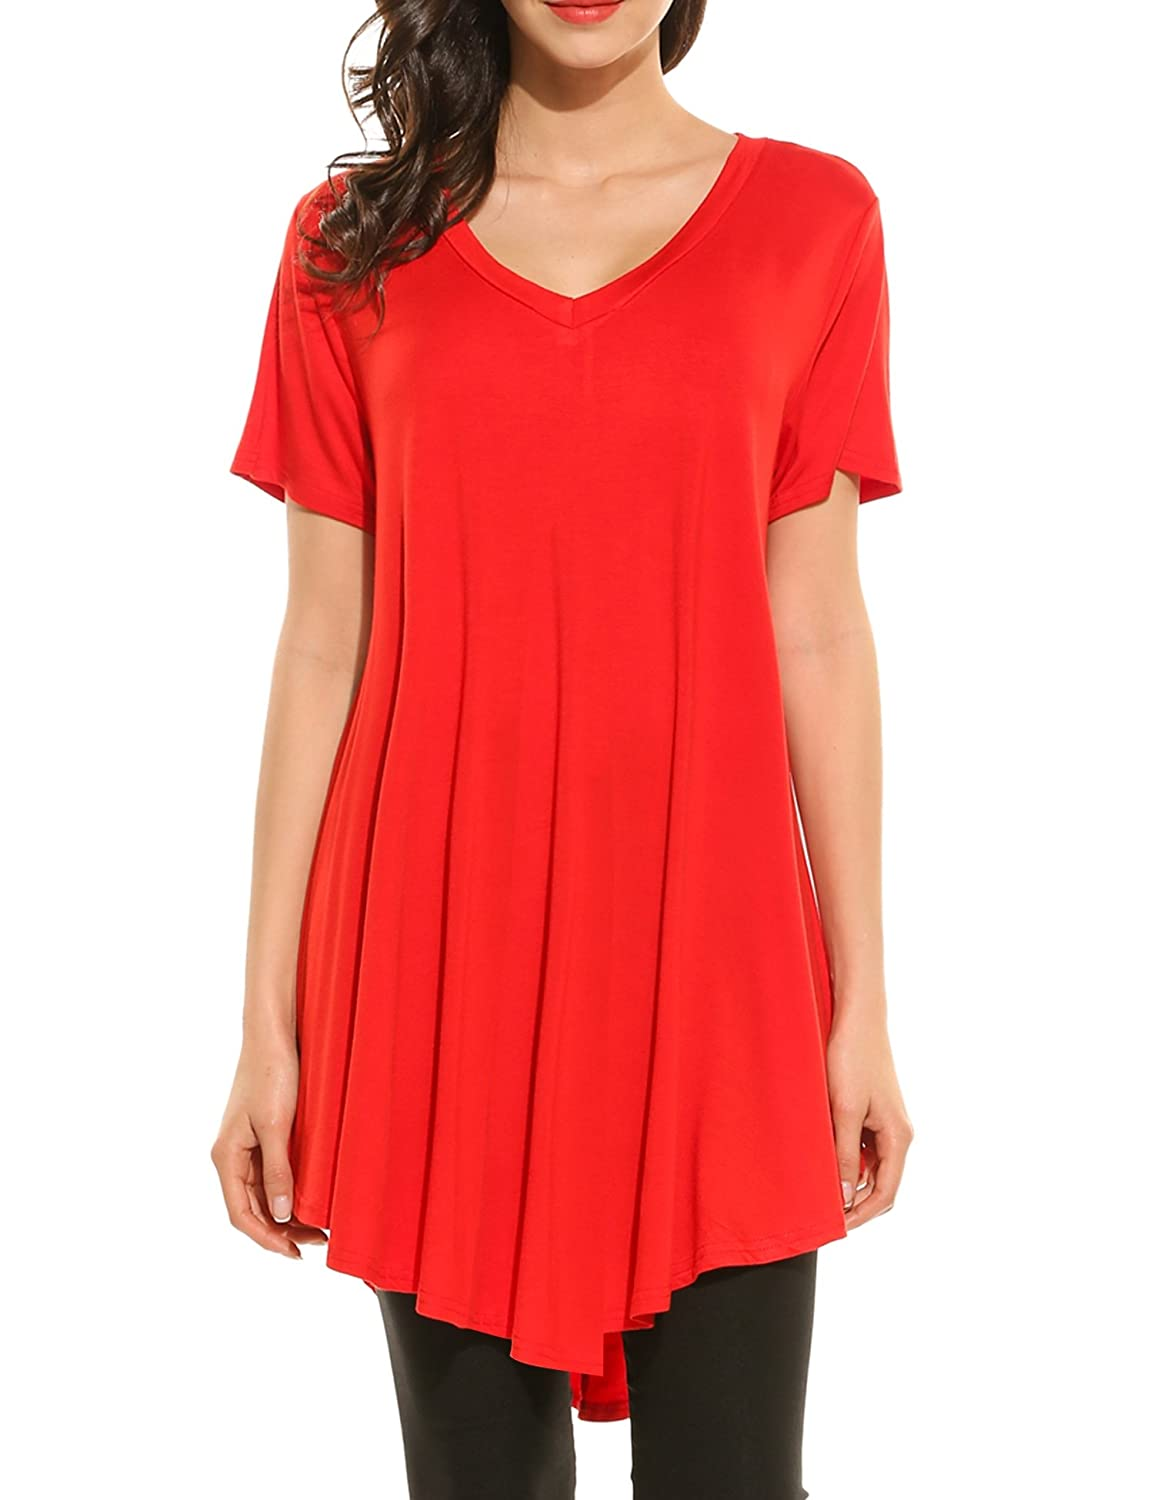 HOTOUCH Women V-Neck Short Sleeve Casual Loose Fit Flare Hem Tunic Tops AHH009580